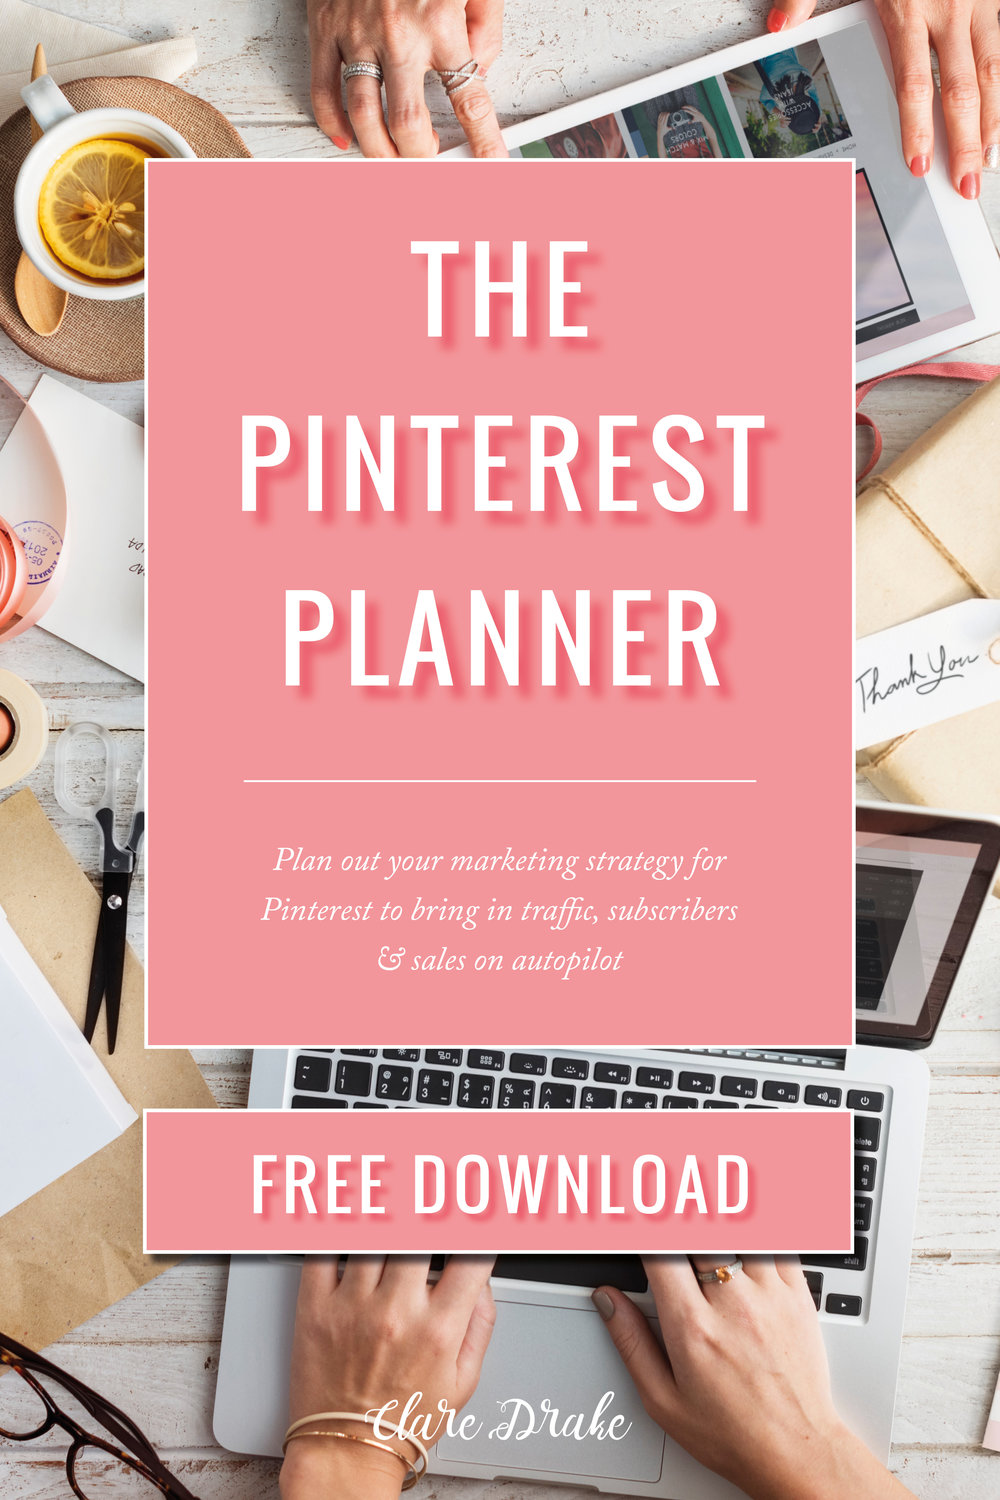 Pinterest Planner [FREE DOWNLOAD] via @claredrake1